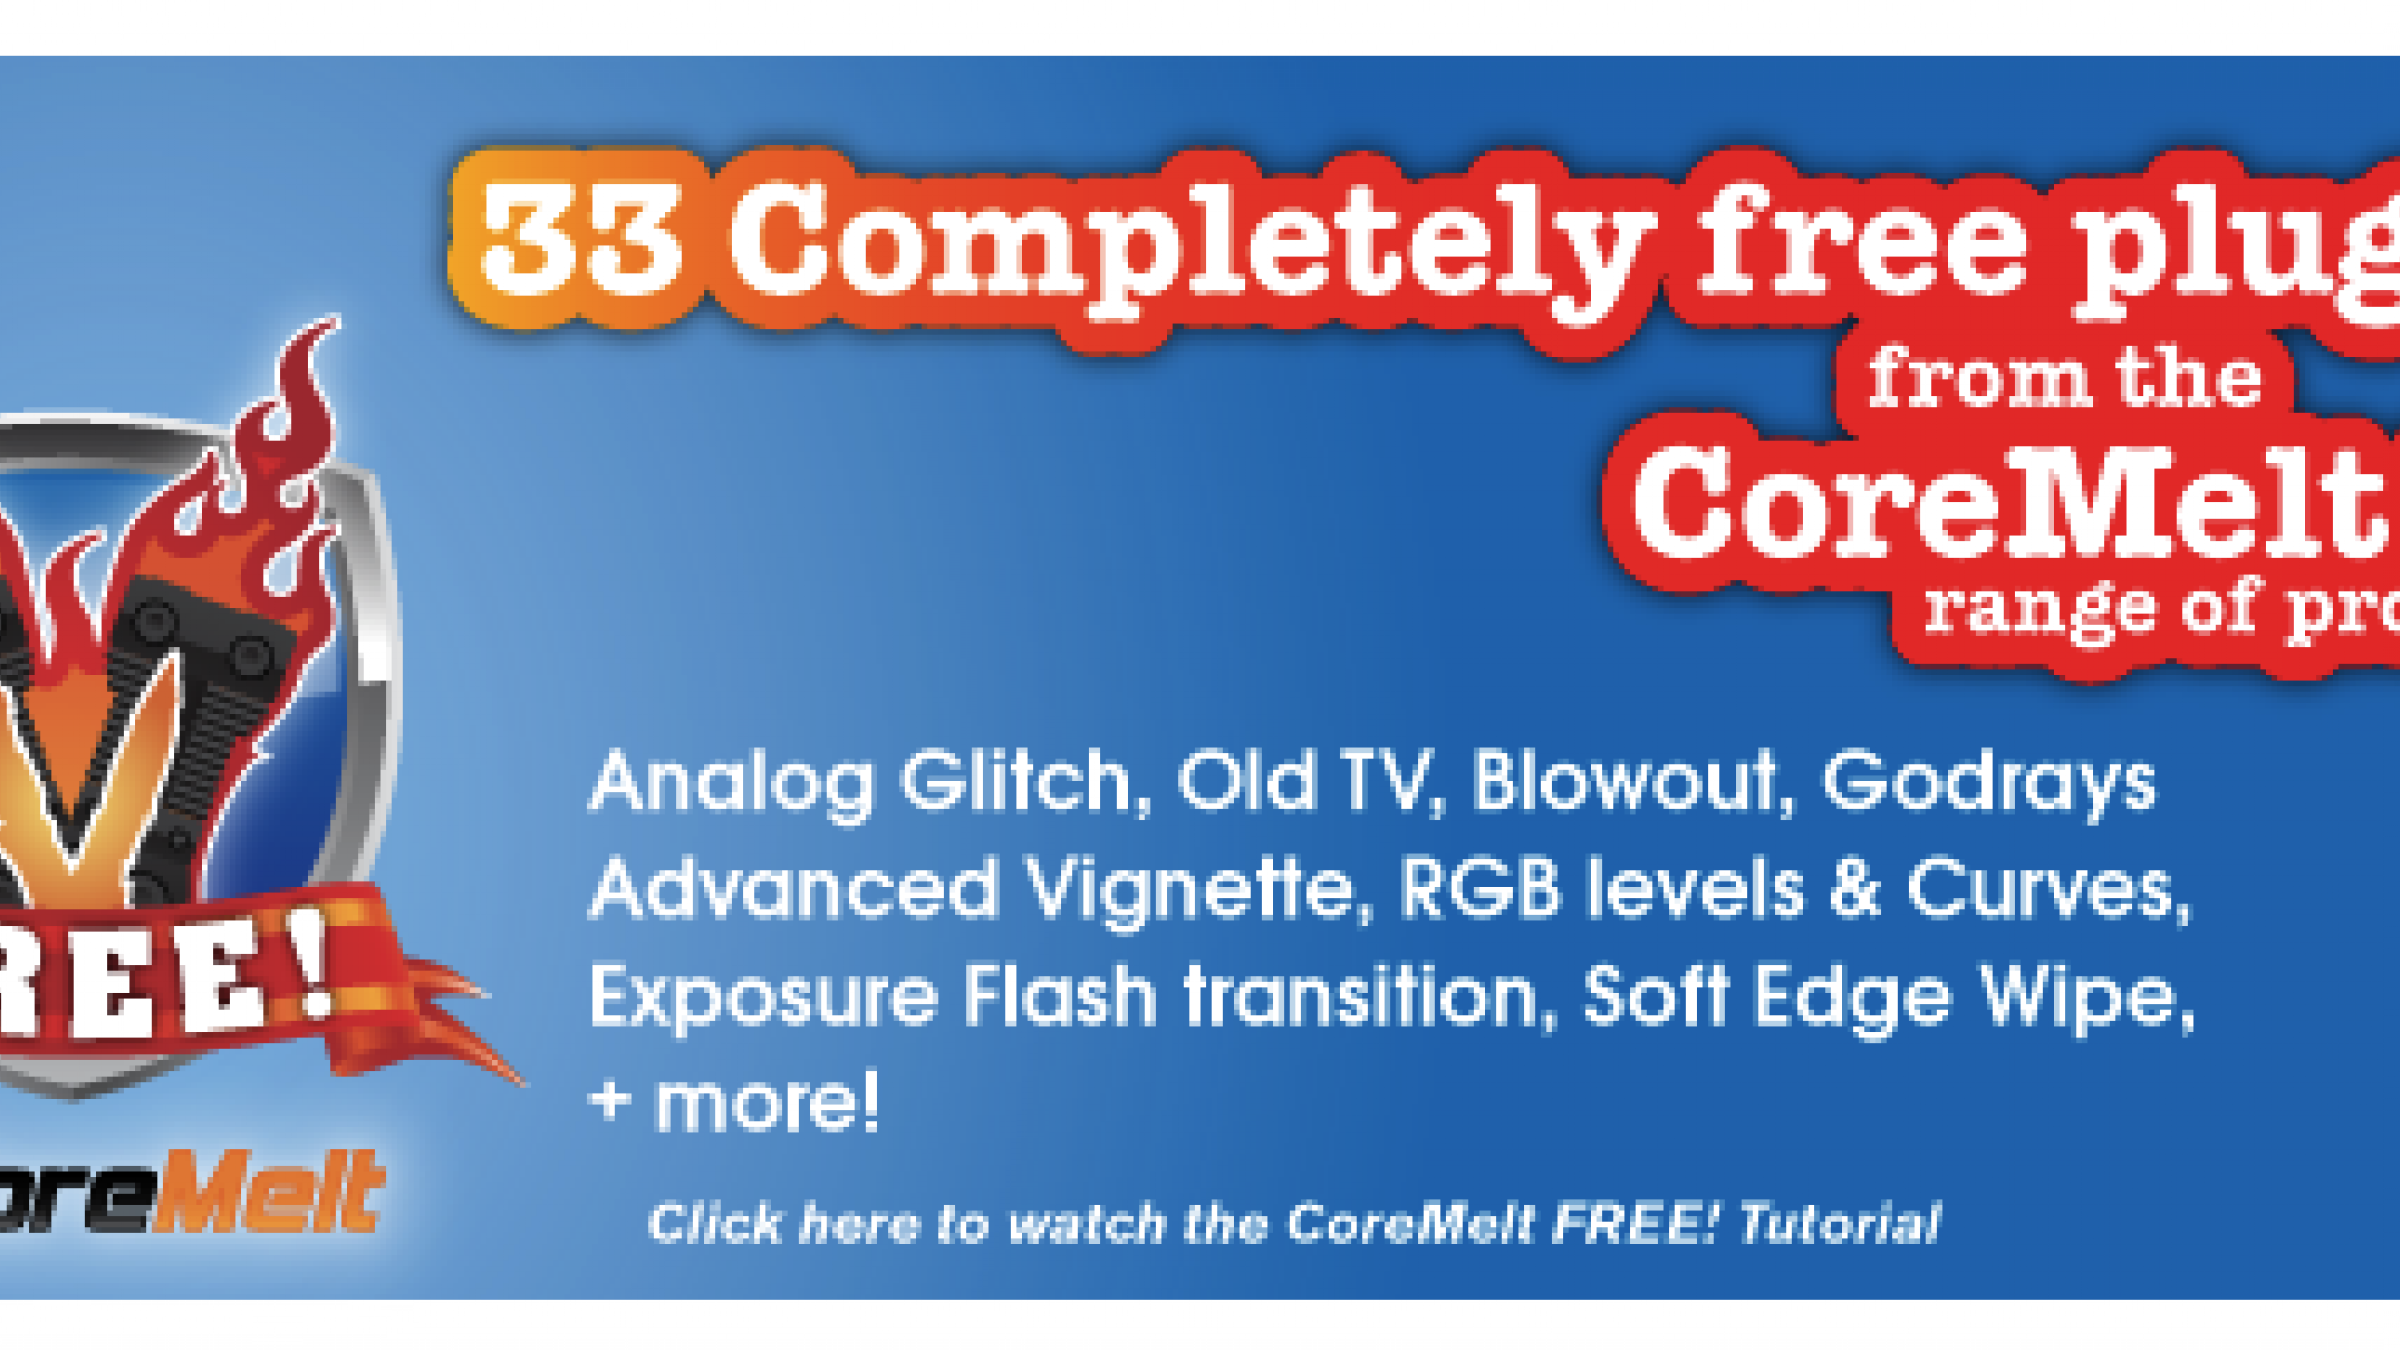 Get 33 Final Cut Pro and After Effects Plugins from CoreMelt for Free